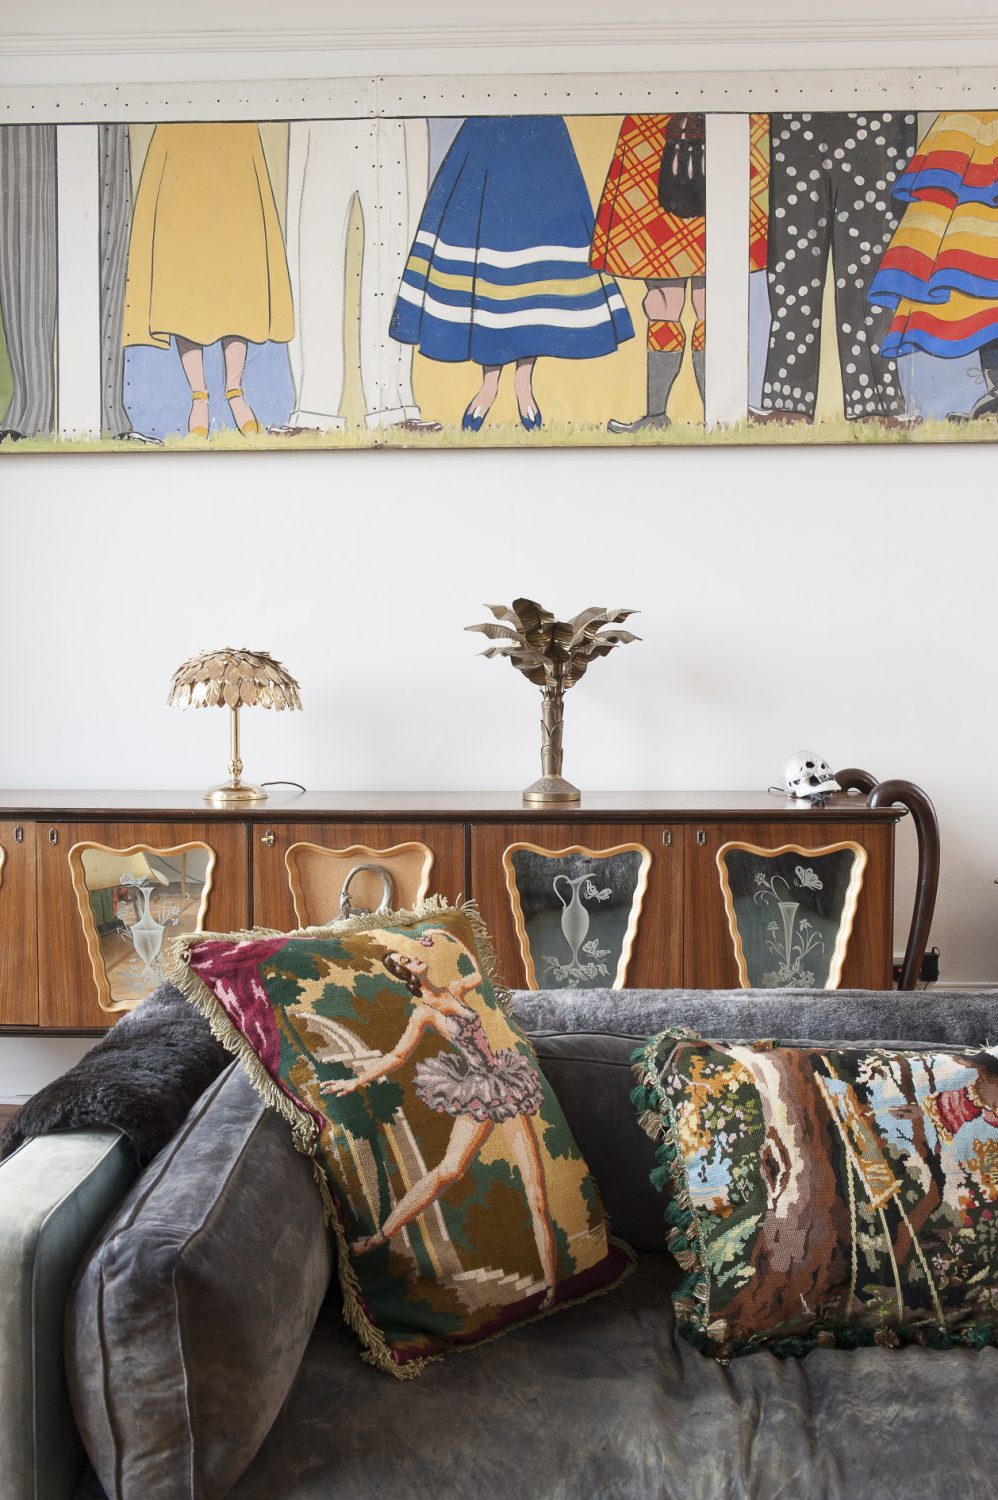 Tapestry cushions adorn a sofa that once belonged to Engelbert Humpadinck, behind which stand two brass palm lamps, one French the other from HarrodsTapestry cushions adorn a sofa that once belonged to Engelbert Humpadinck, behind which stand two brass palm lamps, one French the other from Harrods